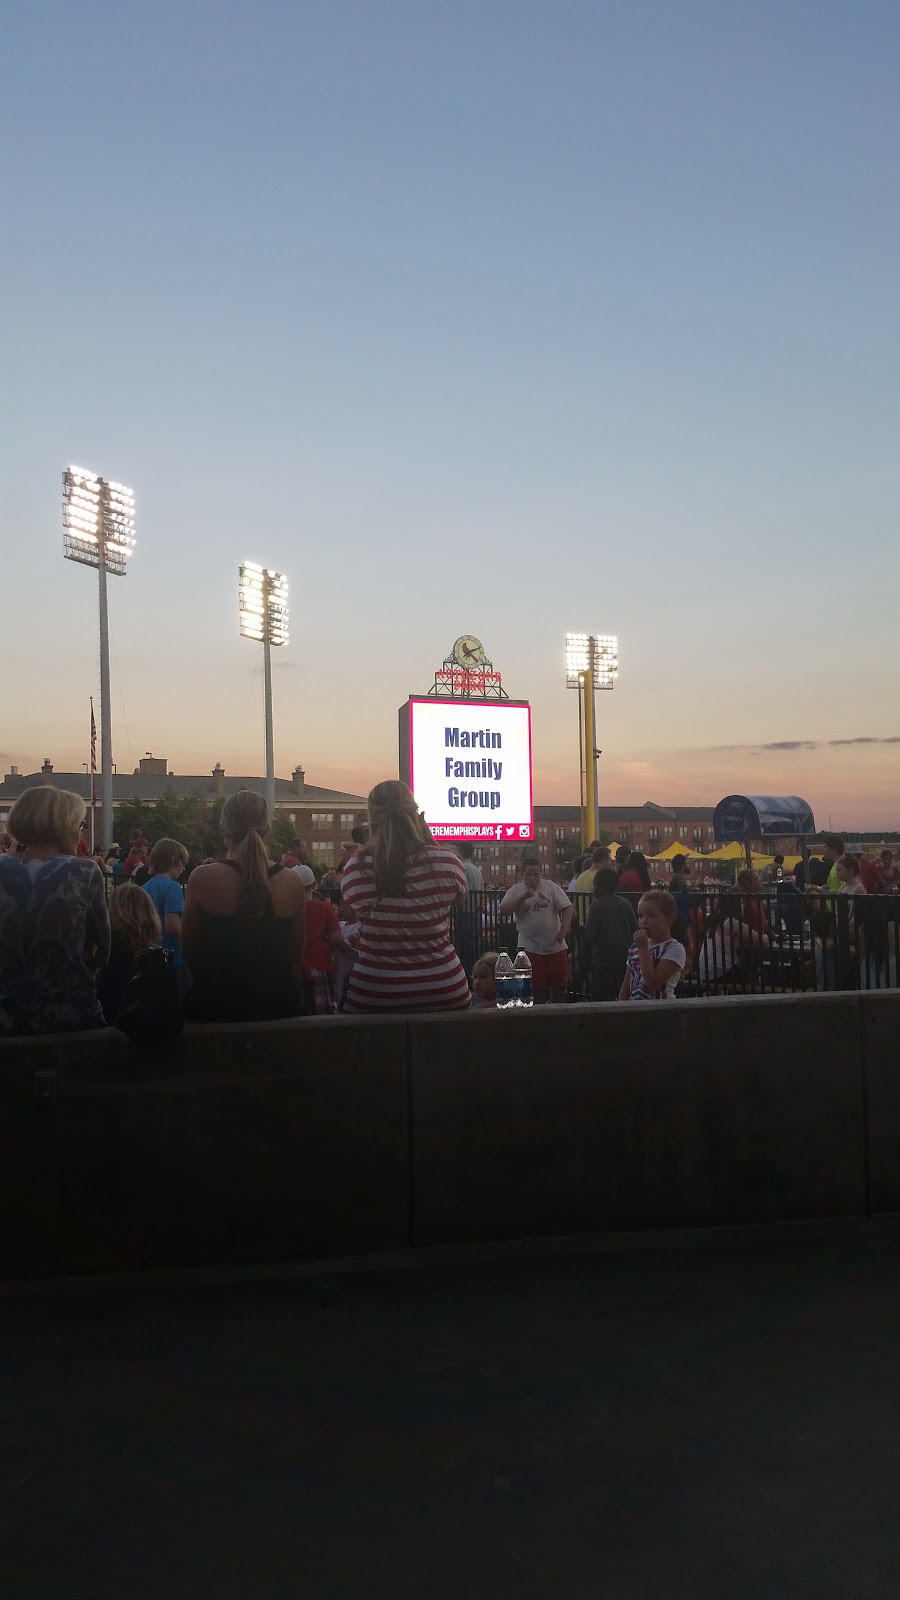 My Epic Family Road Trip Vacation! #RoadTrip #AutoZonePark #Memphis via ProductReviewMom.com